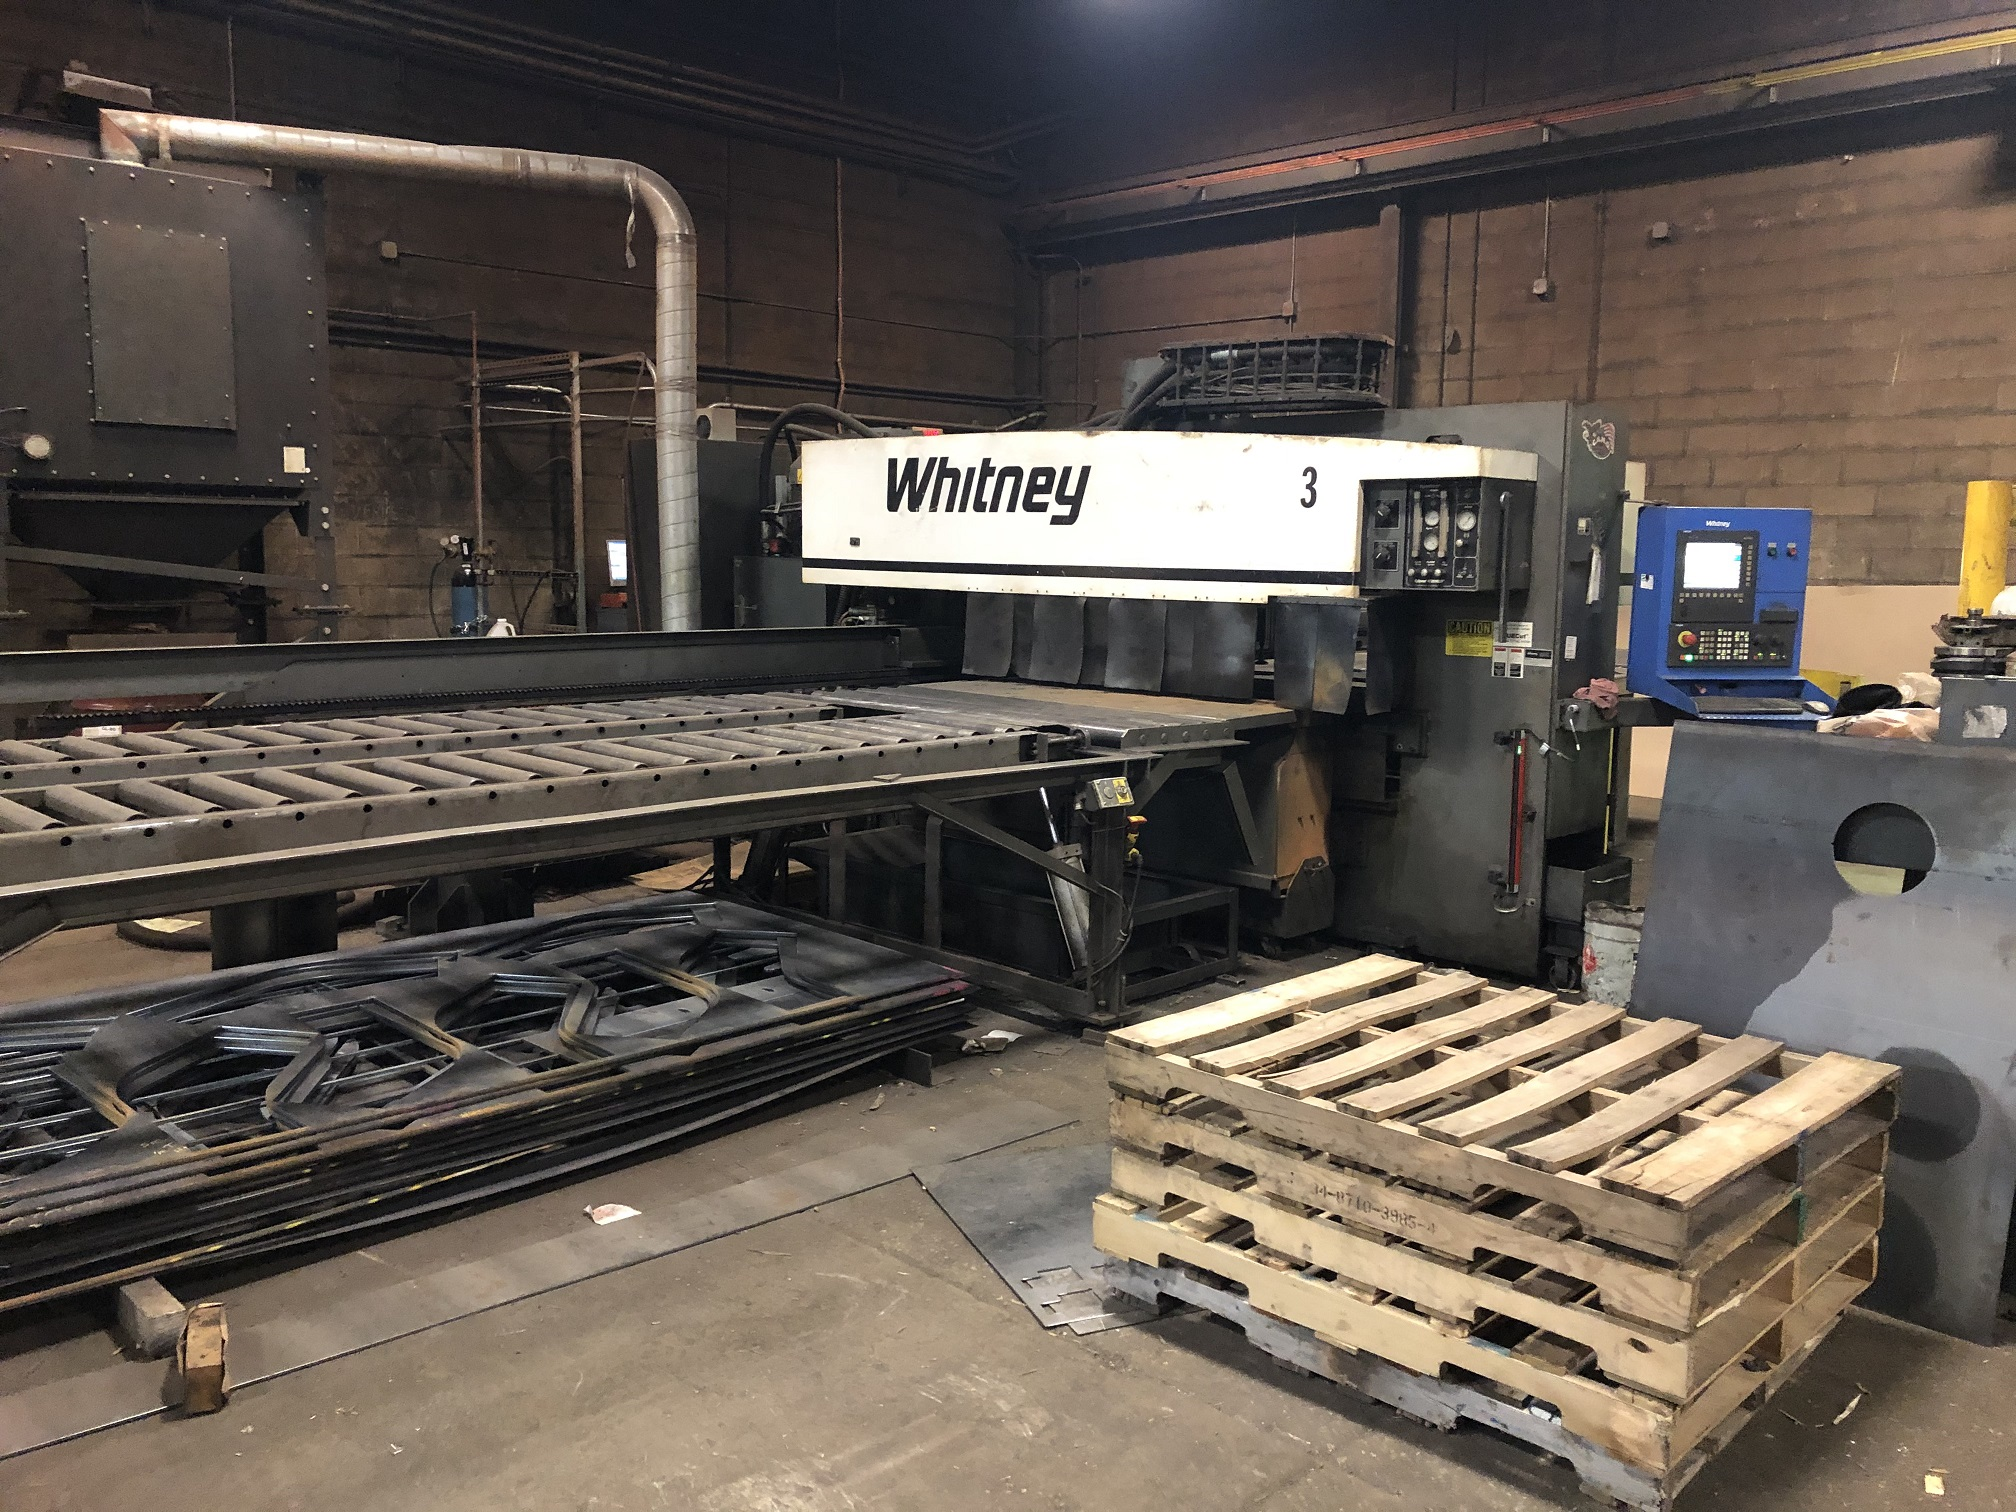 40 TON WHITNEY 3400XP, 2007, SIEMENS 840 DI CONTROL, HYPERTHERM HYSPEED HT2000LHF PLASMA, MISC TOOLING